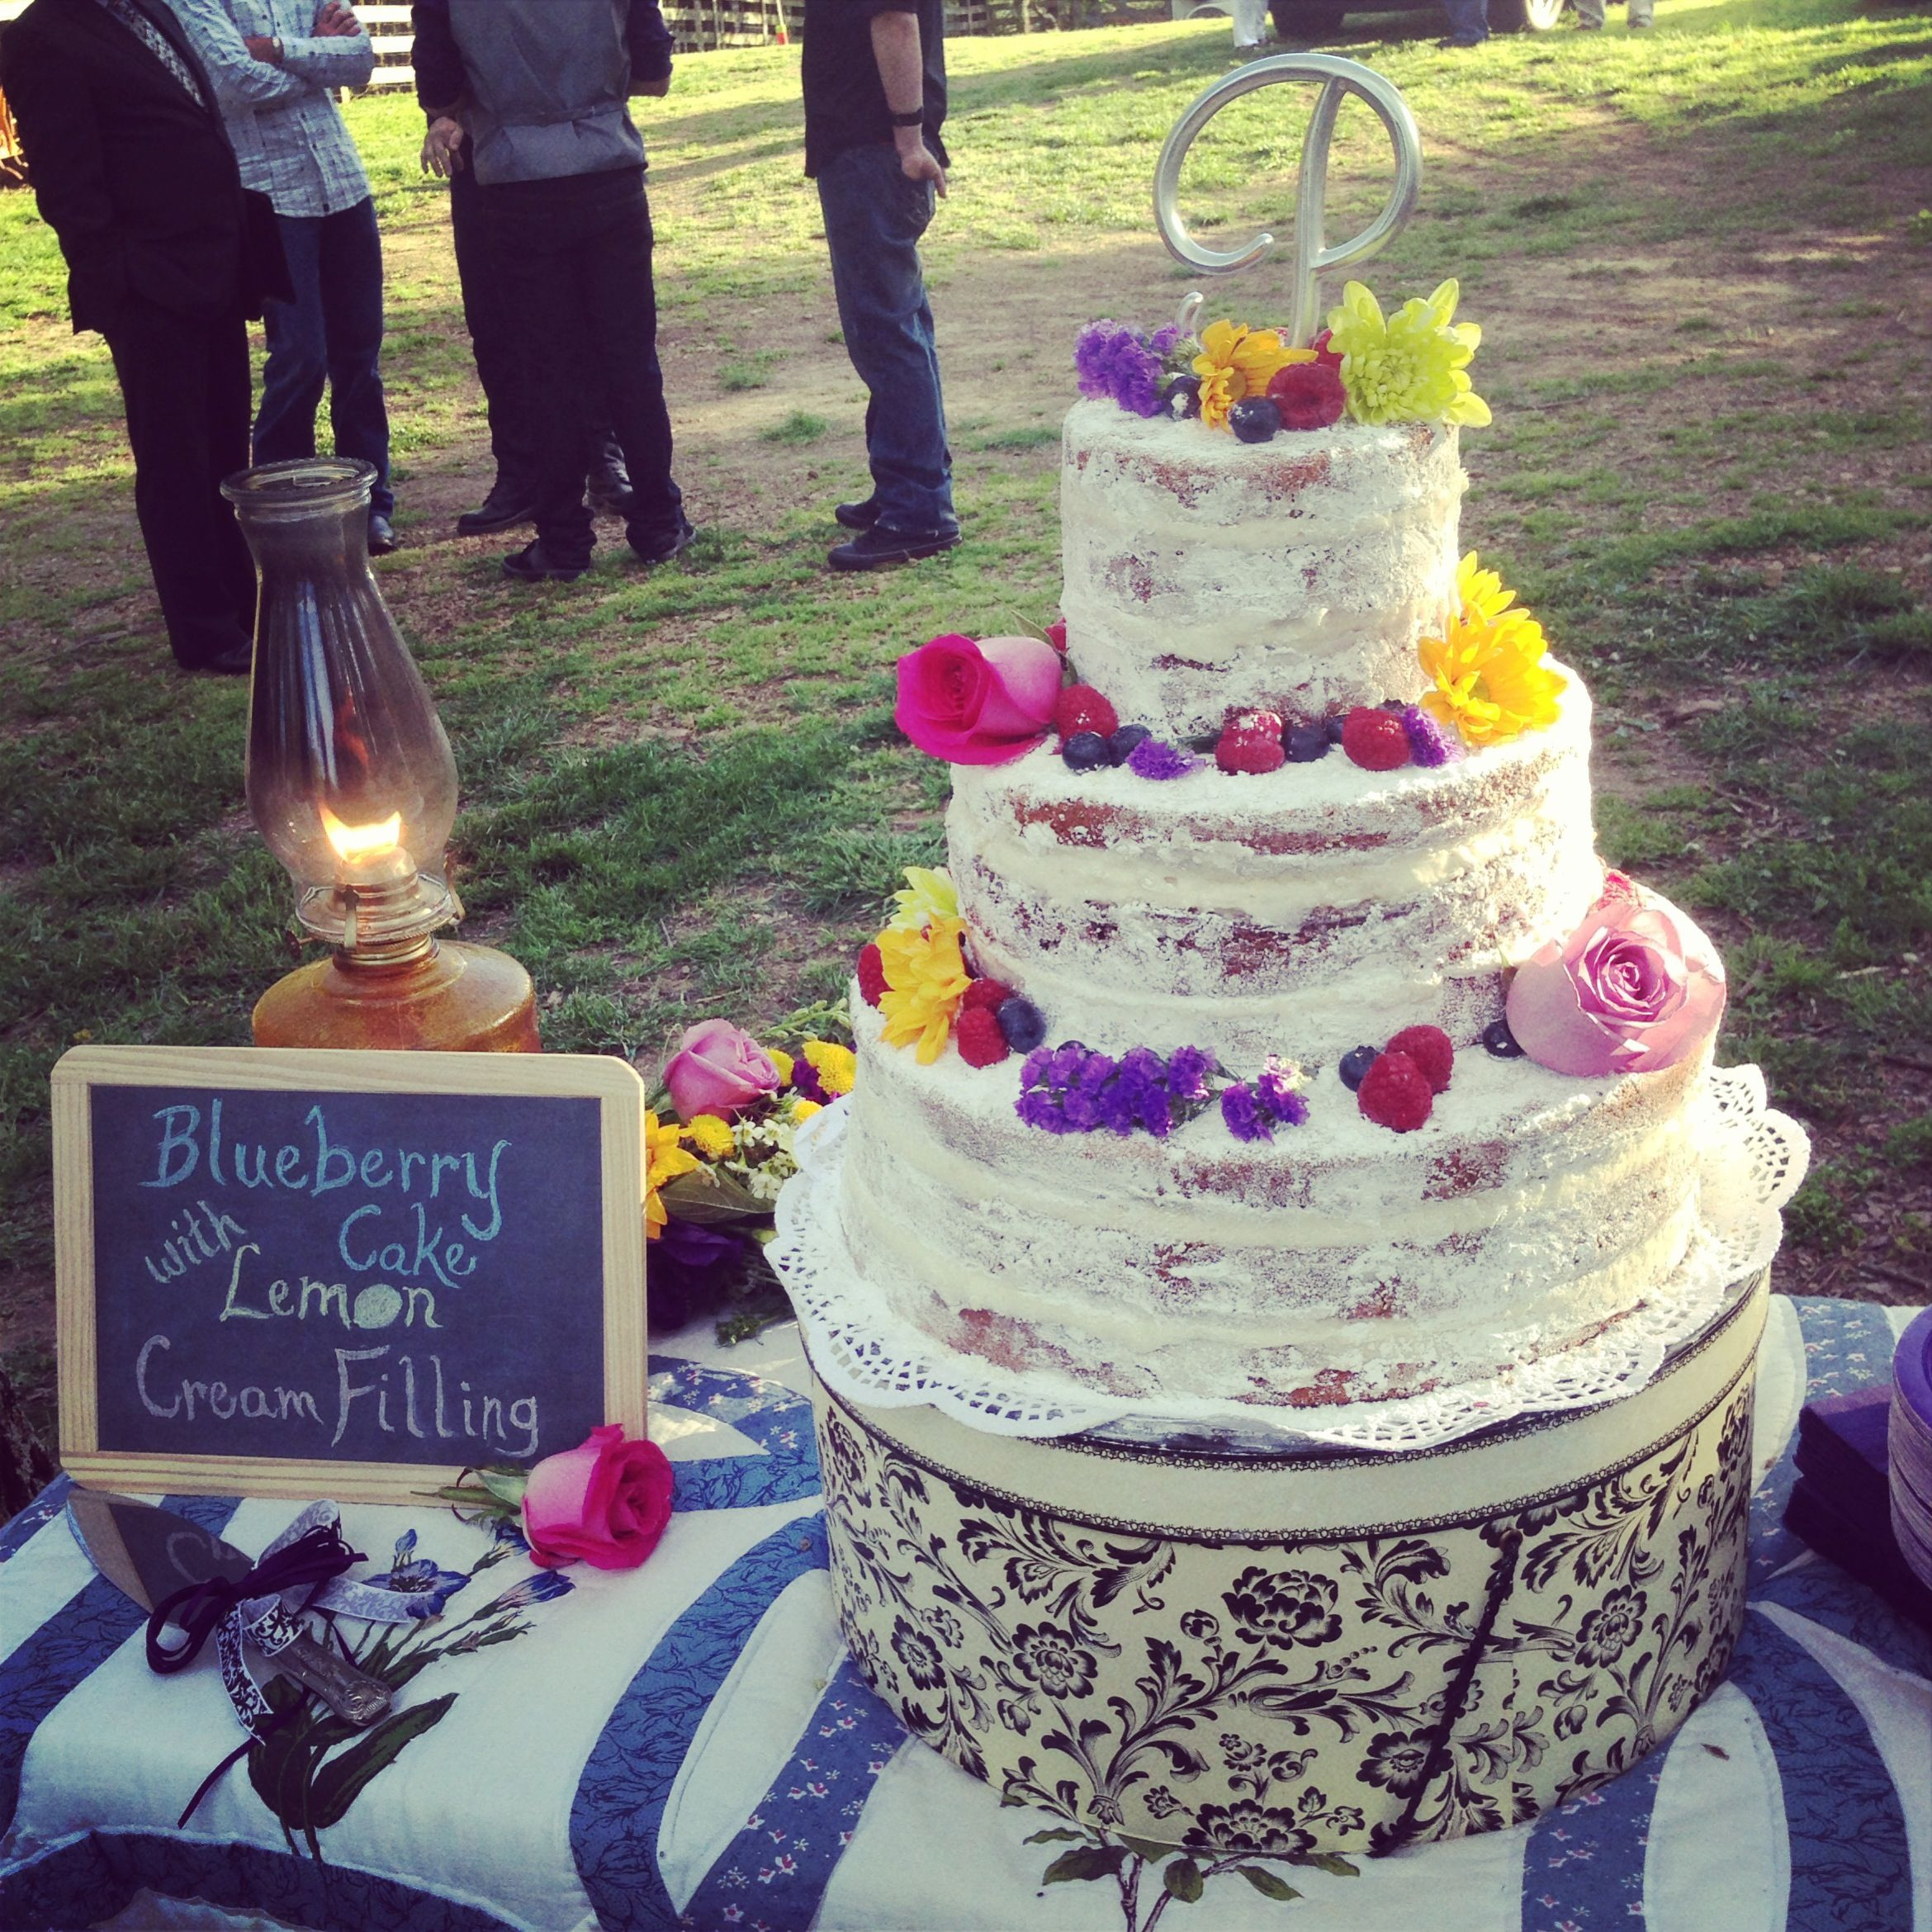 Rustic Wedding Cake: My Rustic Wedding Cake Masterpiece. I Made This For My Mom